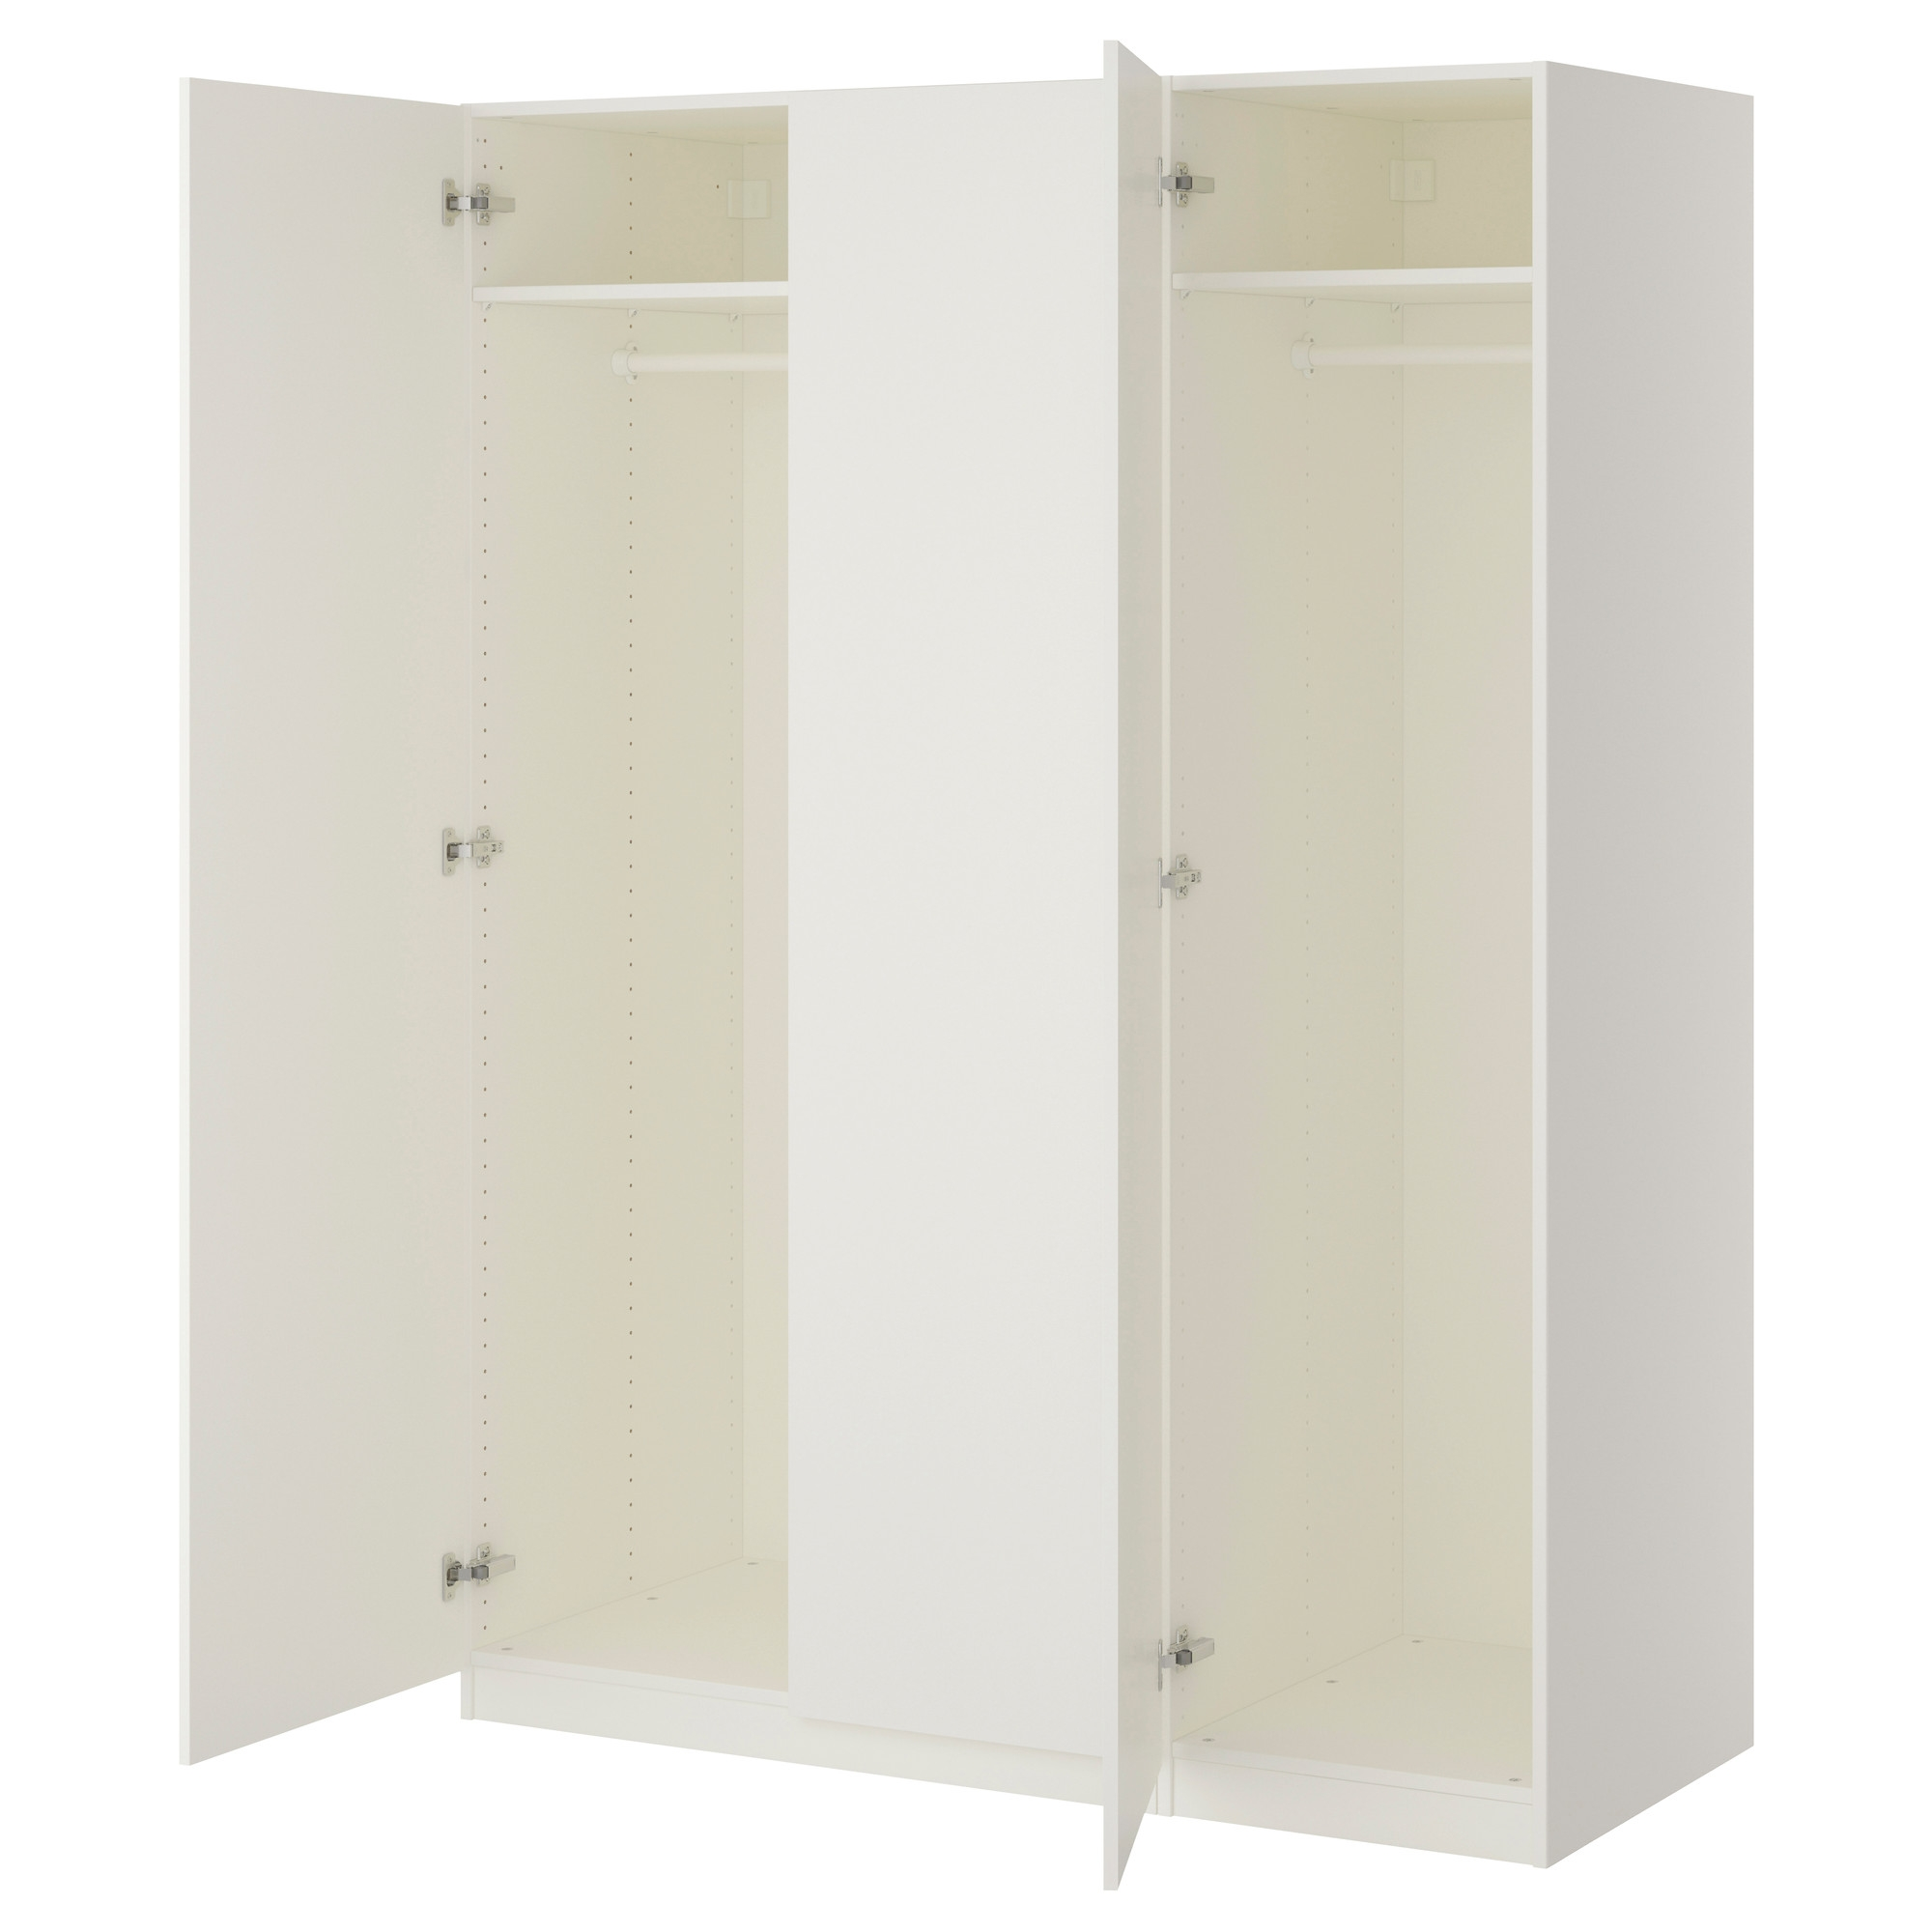 Wardrobes Pax System Ikea Throughout Fitted Wardrobe Depth (Image 14 of 15)